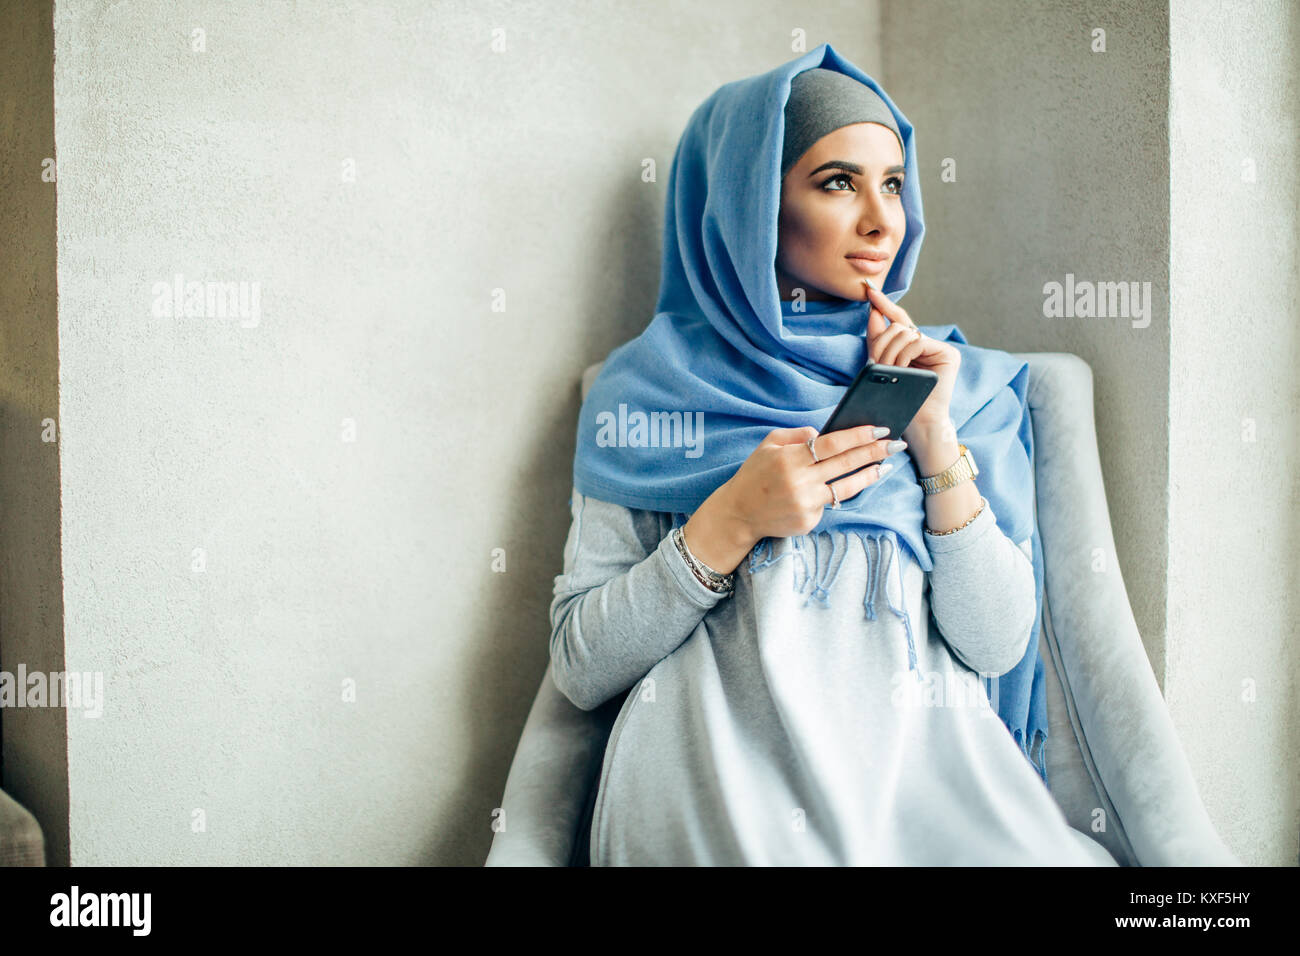 Muslim woman messaging on a mobile phone in cafe - Stock Image